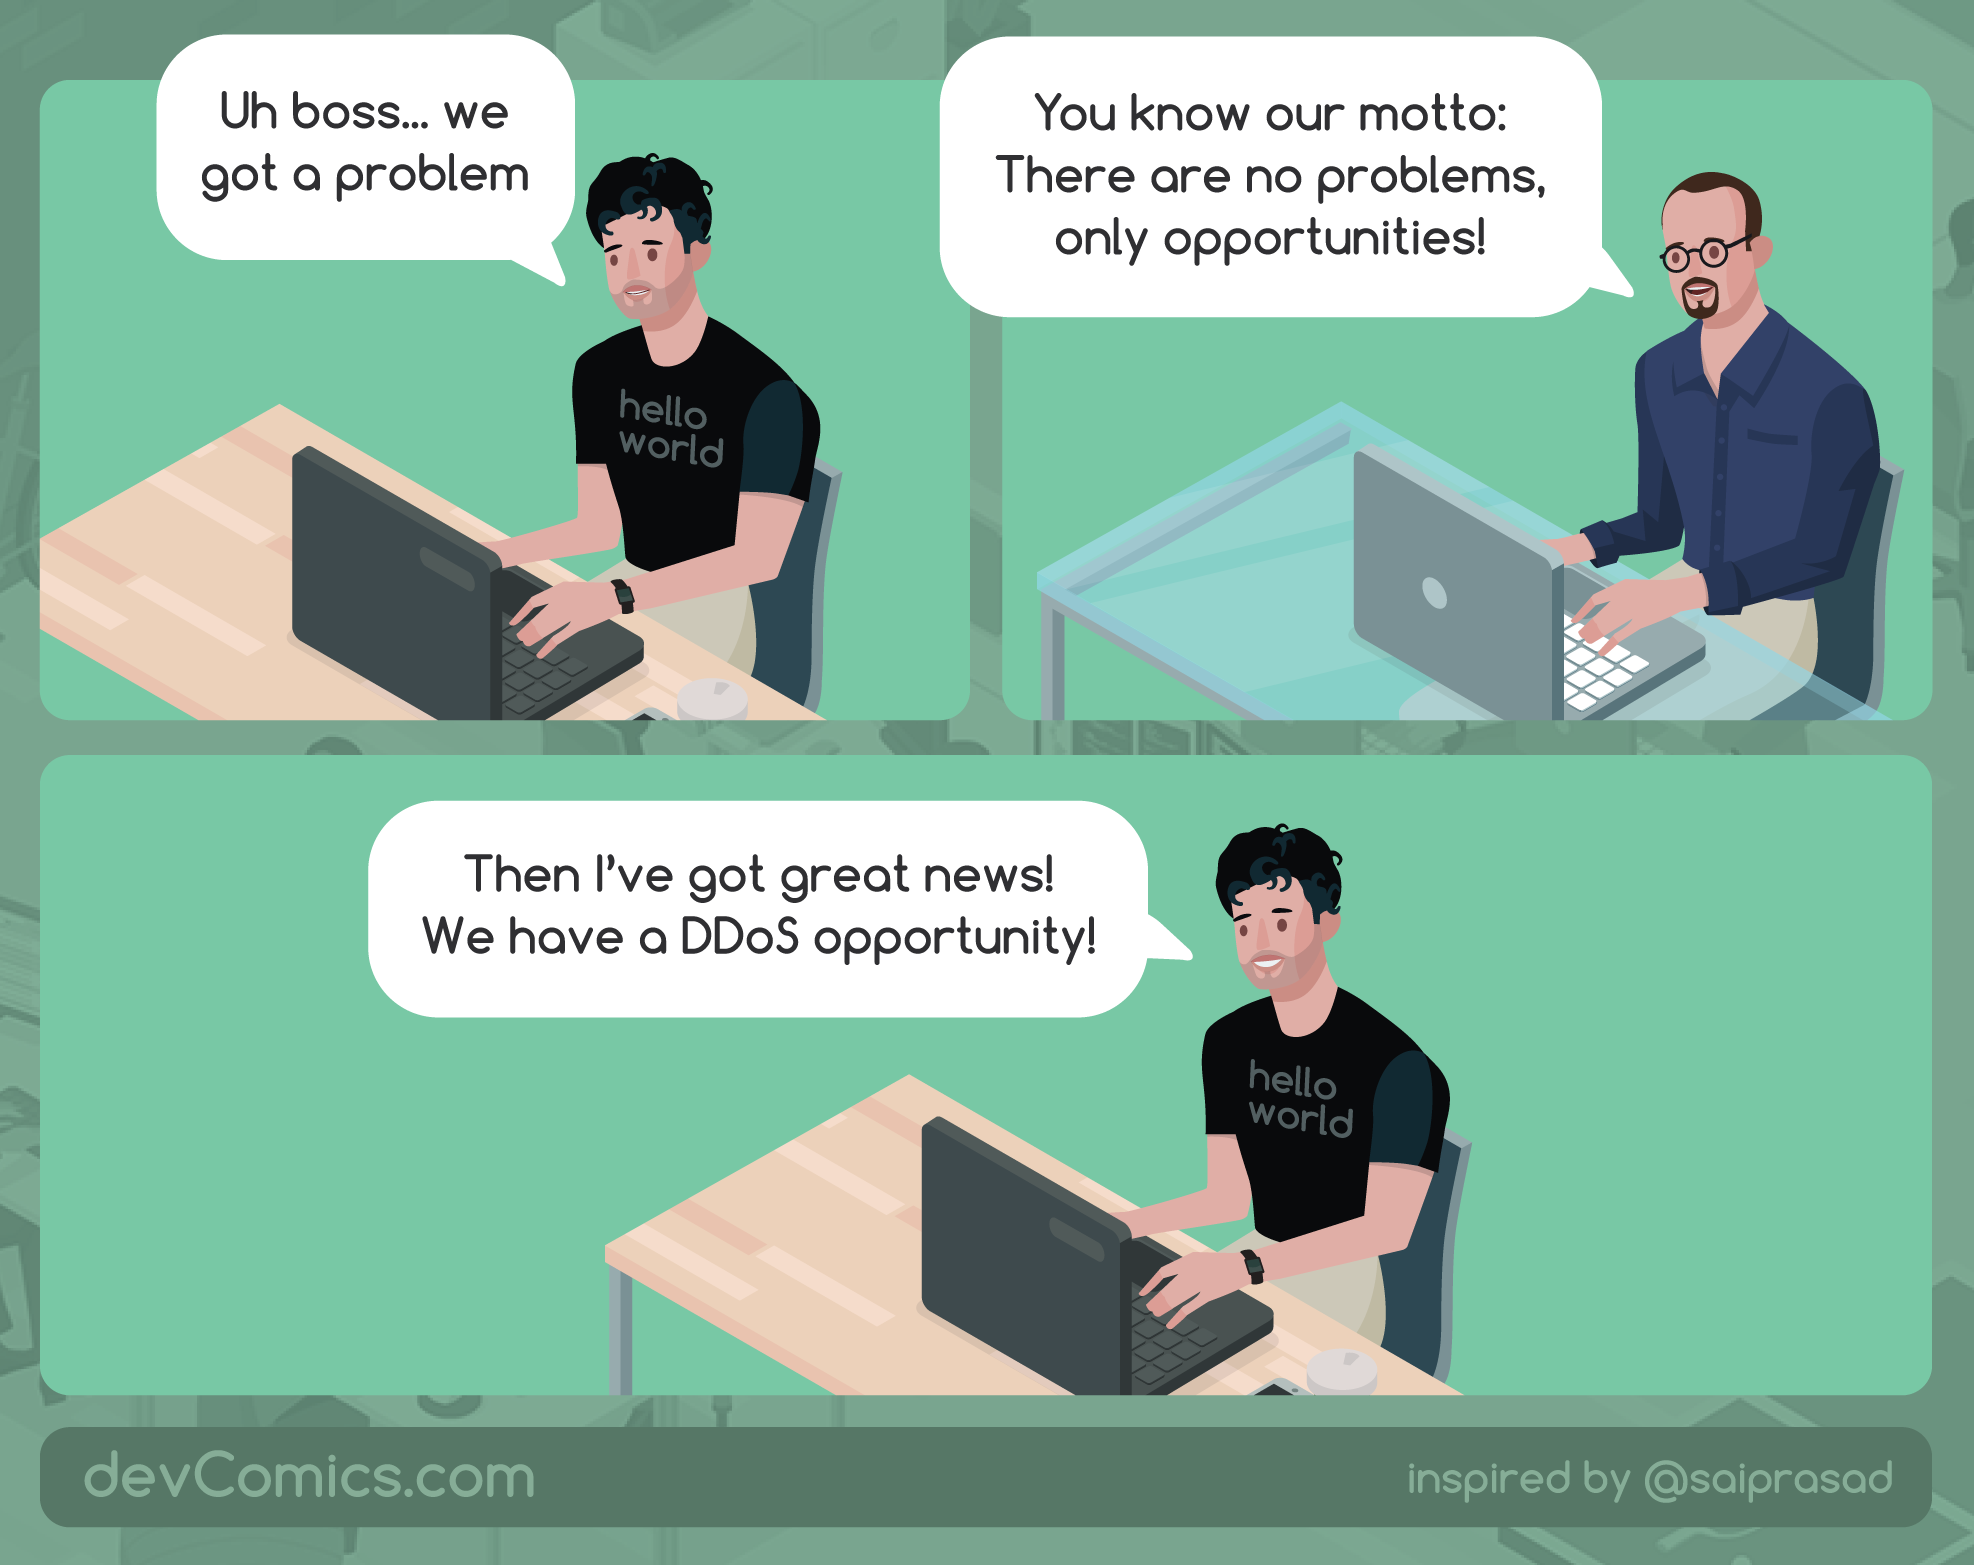 When opportunity knocks - devComic